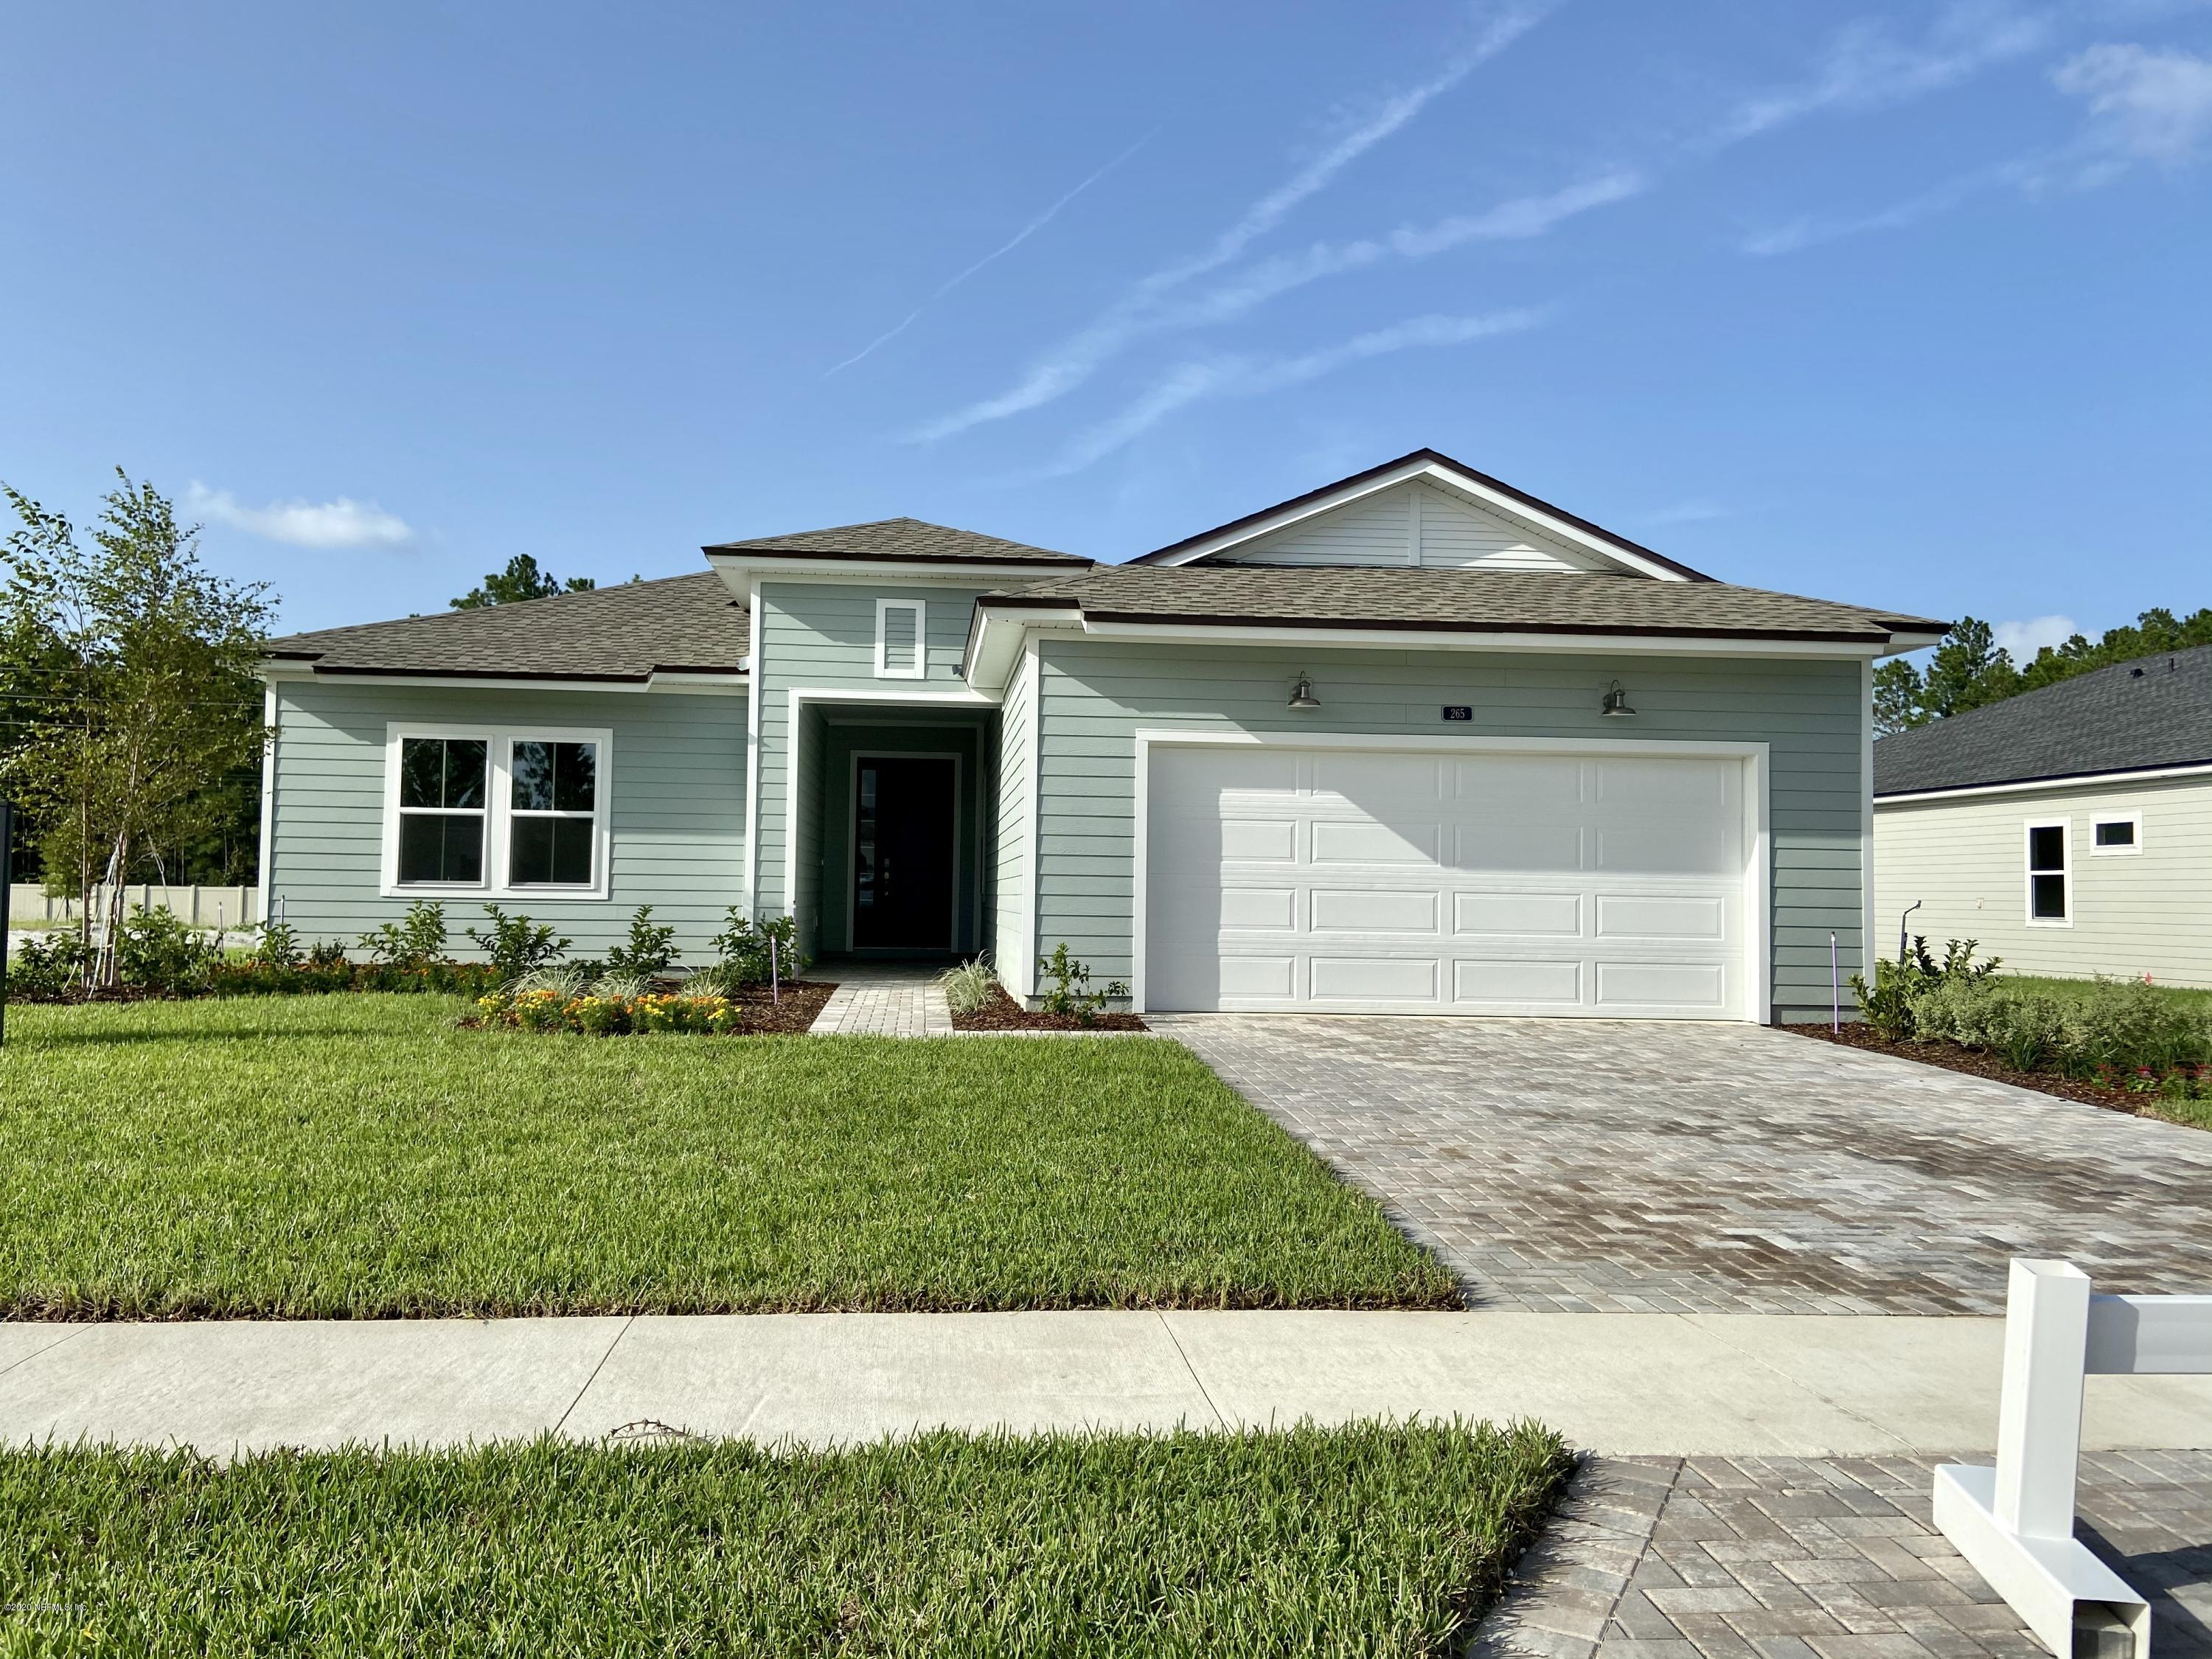 265 MORNING MIST, ST JOHNS, FLORIDA 32259, 4 Bedrooms Bedrooms, ,2 BathroomsBathrooms,Residential,For sale,MORNING MIST,1044042